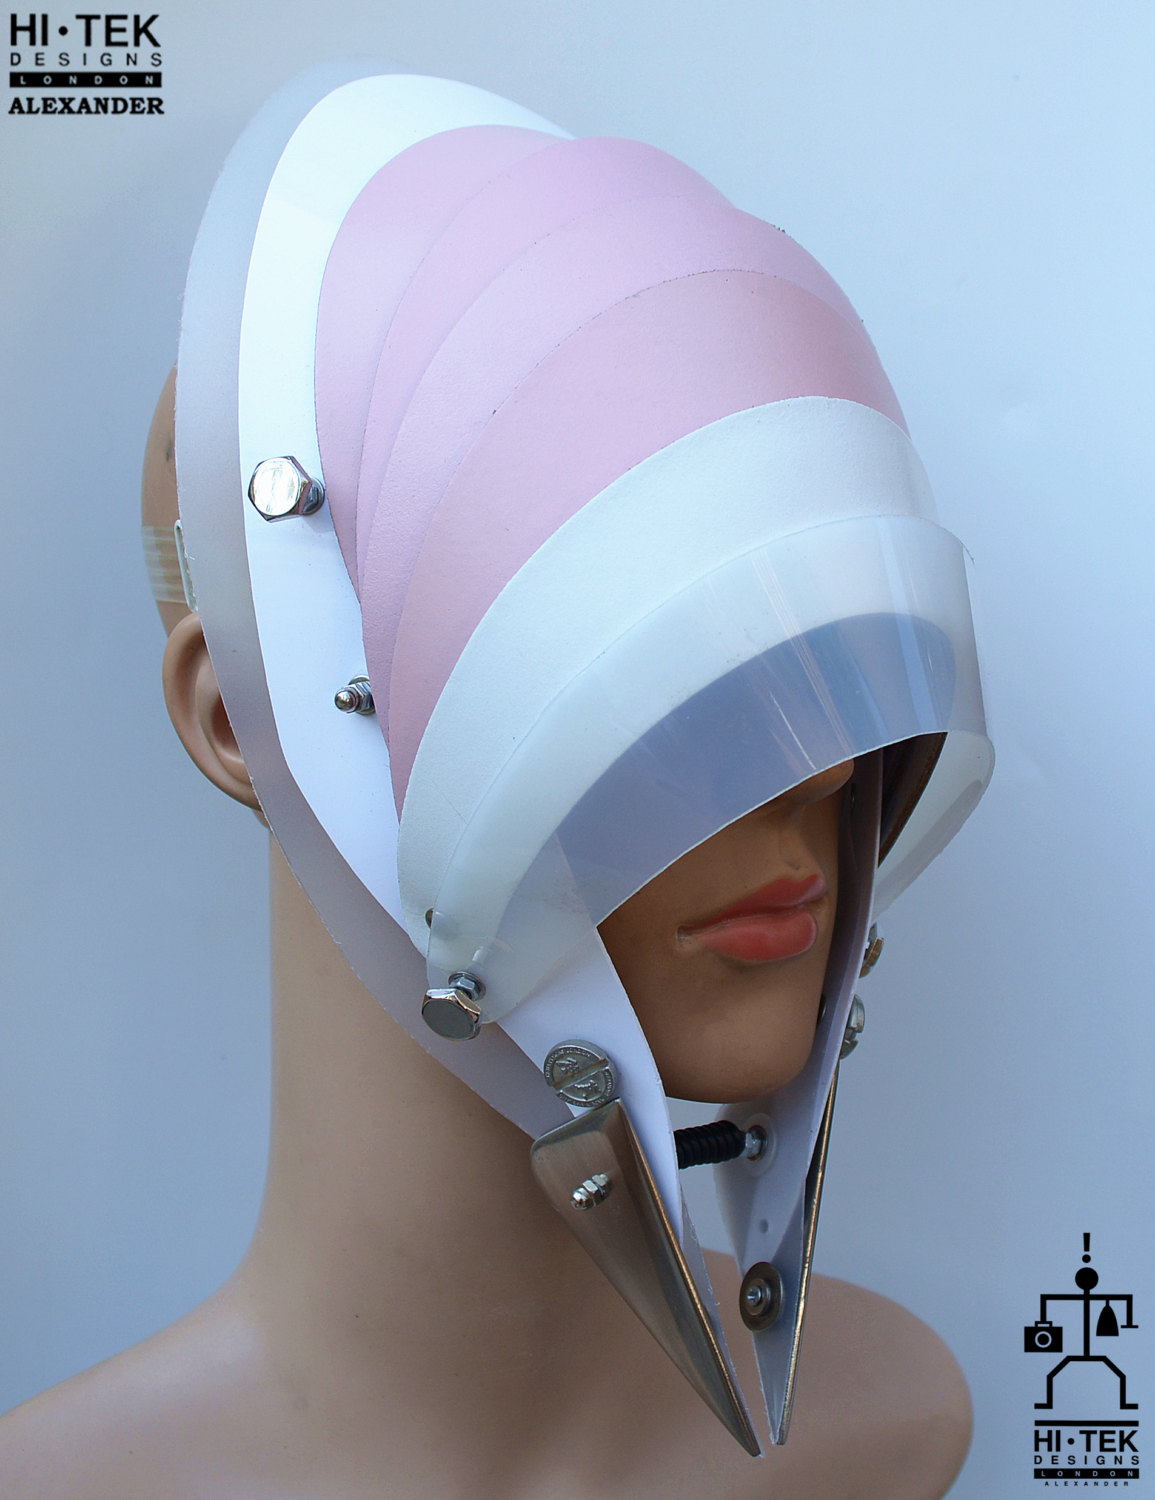 Hi Tek handmade modern futuristic, sci fi ,gothic ,steampunk unusual party eyewear alien stylish pink leather mask hat headpiece helmet